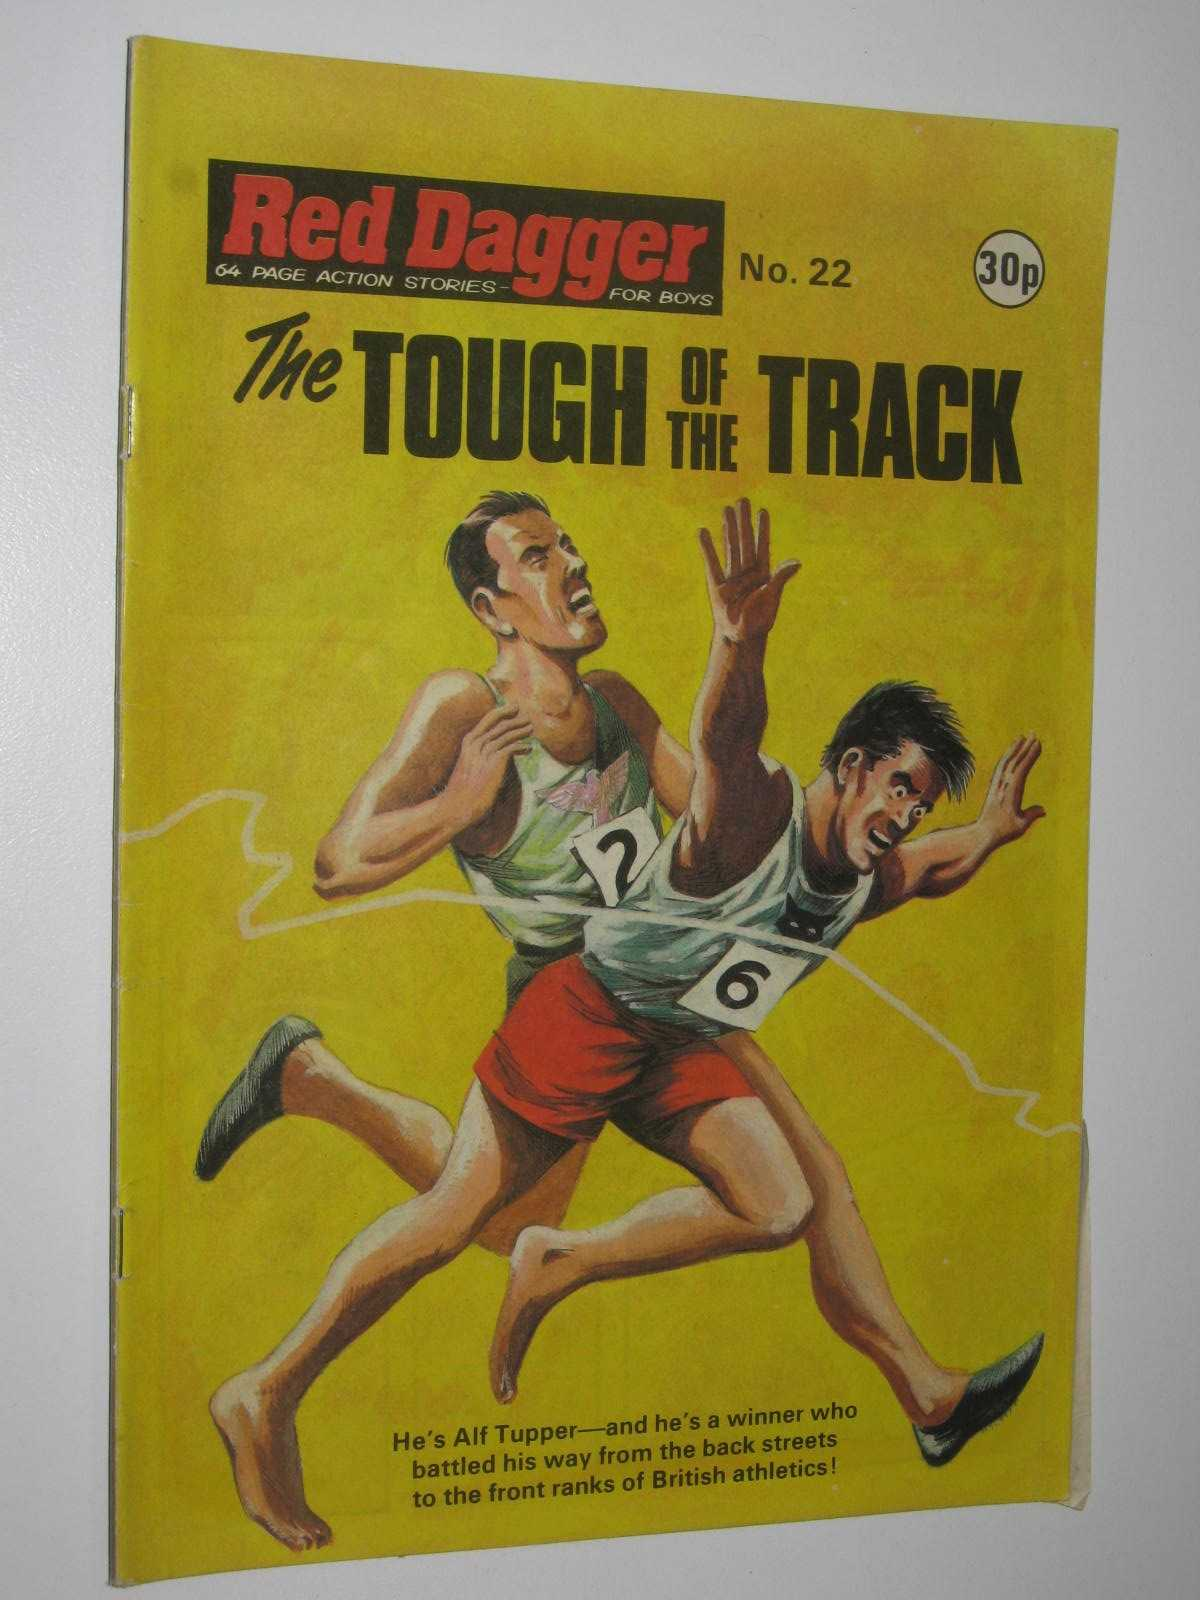 Image for Red Dagger No. 22: The Tough of the Track : 64 Page Action Stories for Boys